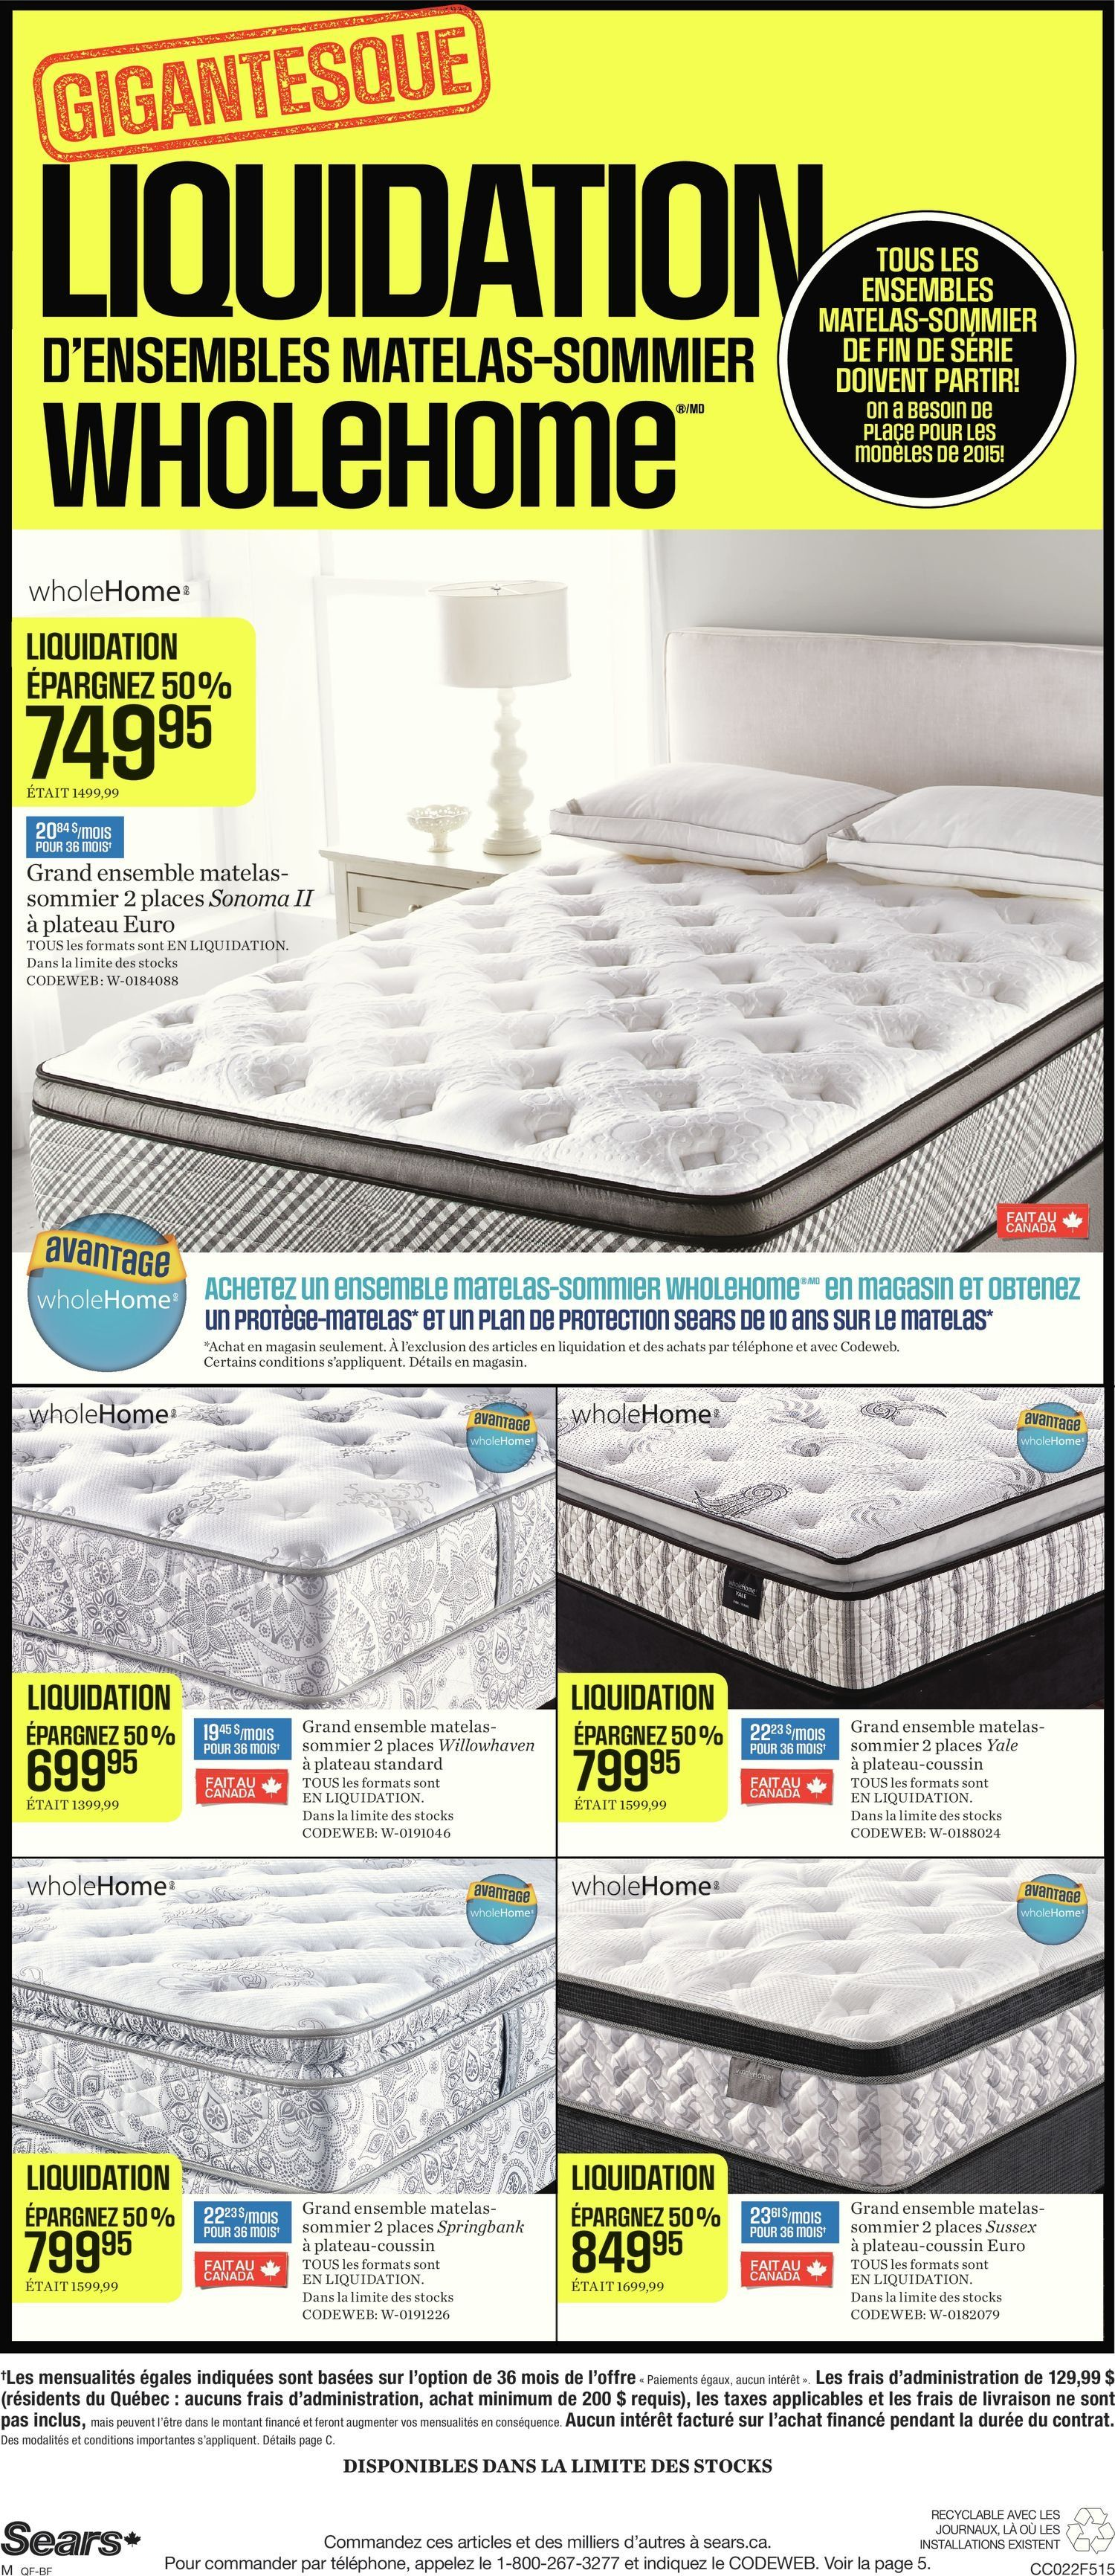 Liquidation World Flyer Sears Weekly Flyer Liquidation De Matelas Wholehome Fr Feb